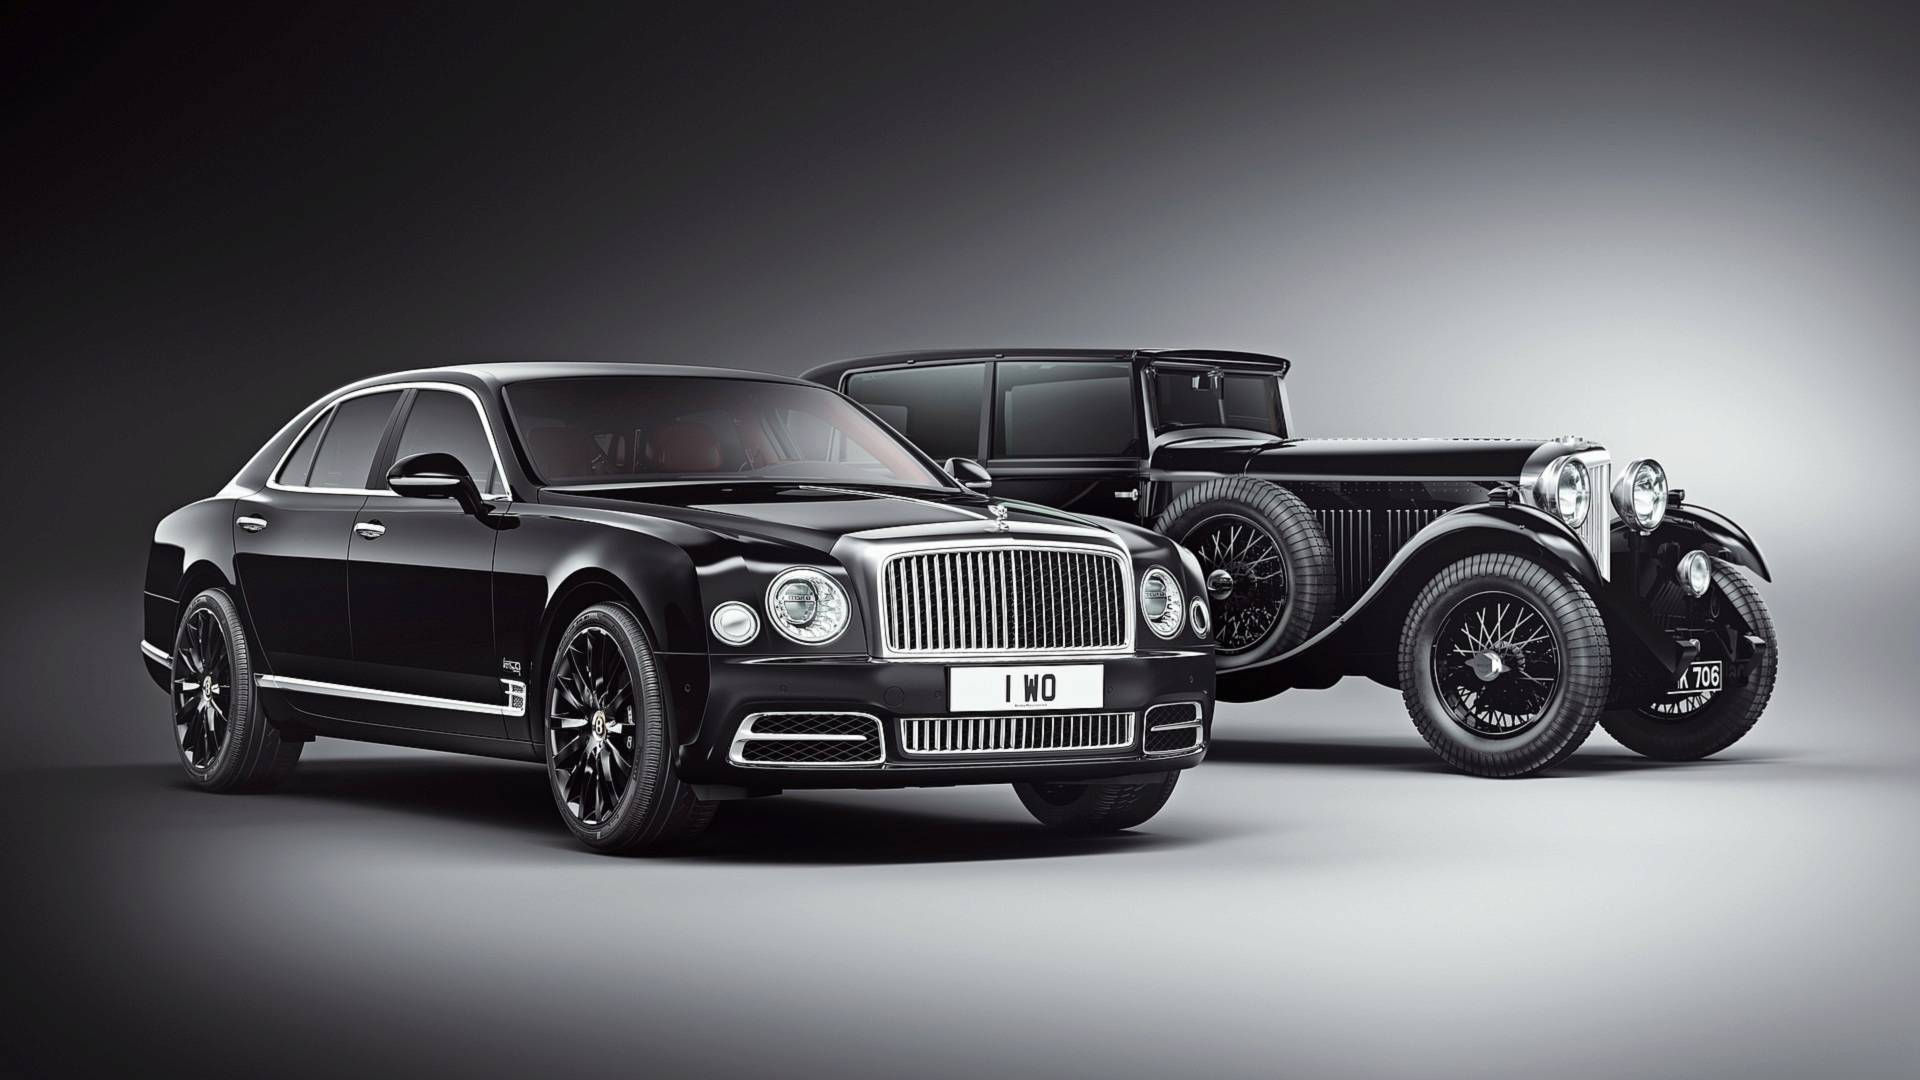 mulsanne-wo-edition-and-8-litre